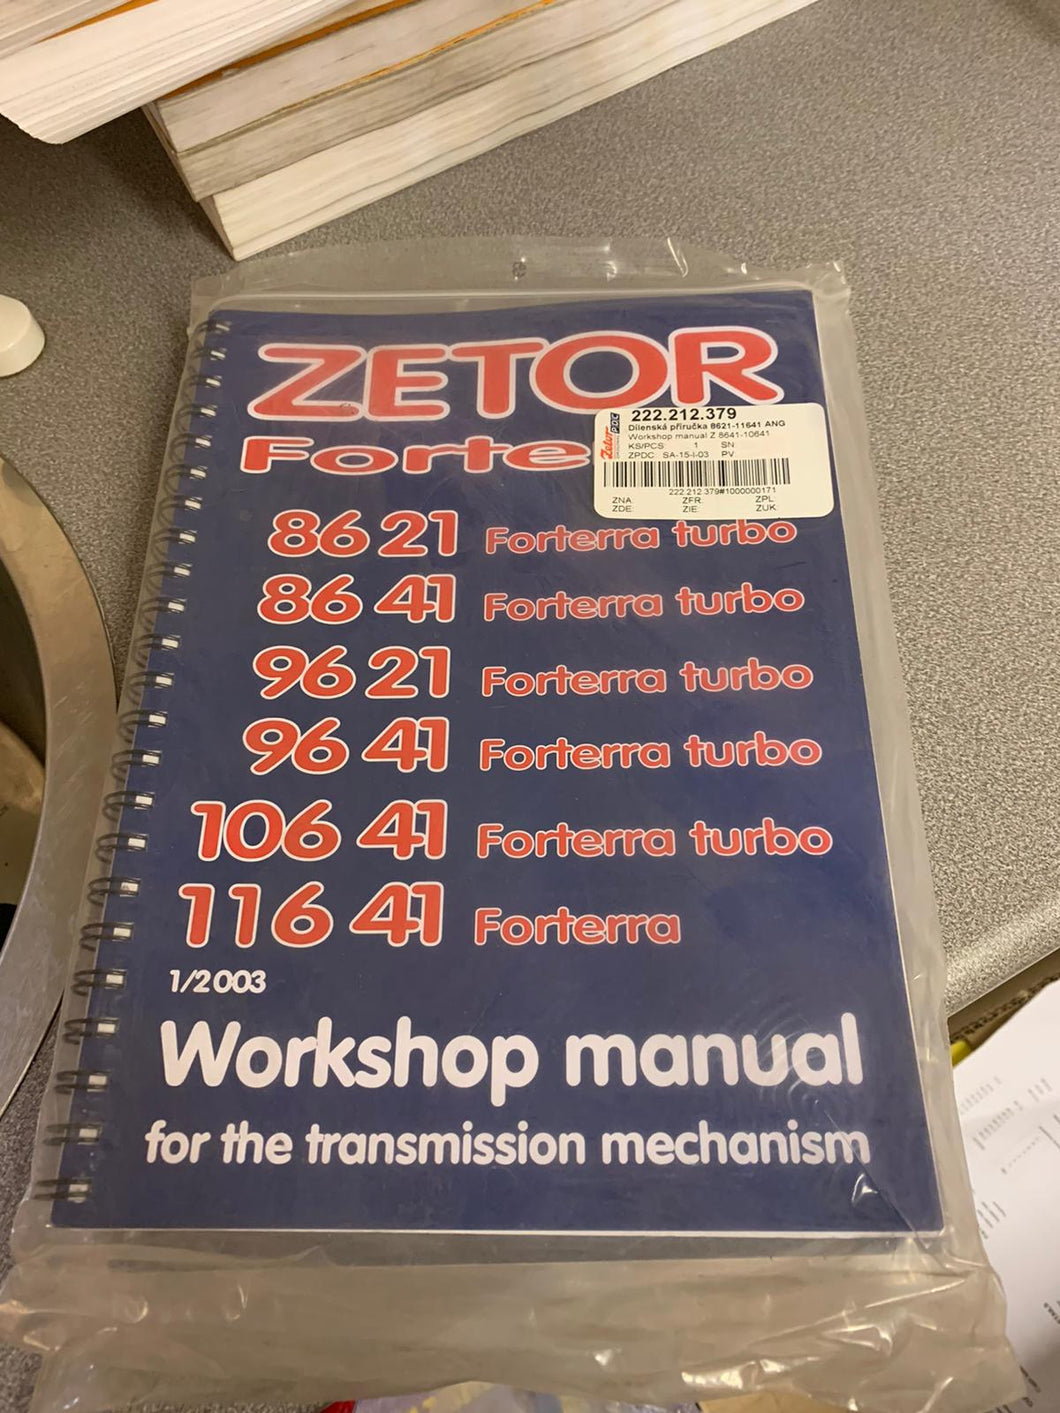 Workshop Manual for Forterra models 8621- 11641 Transmission Mechanisms